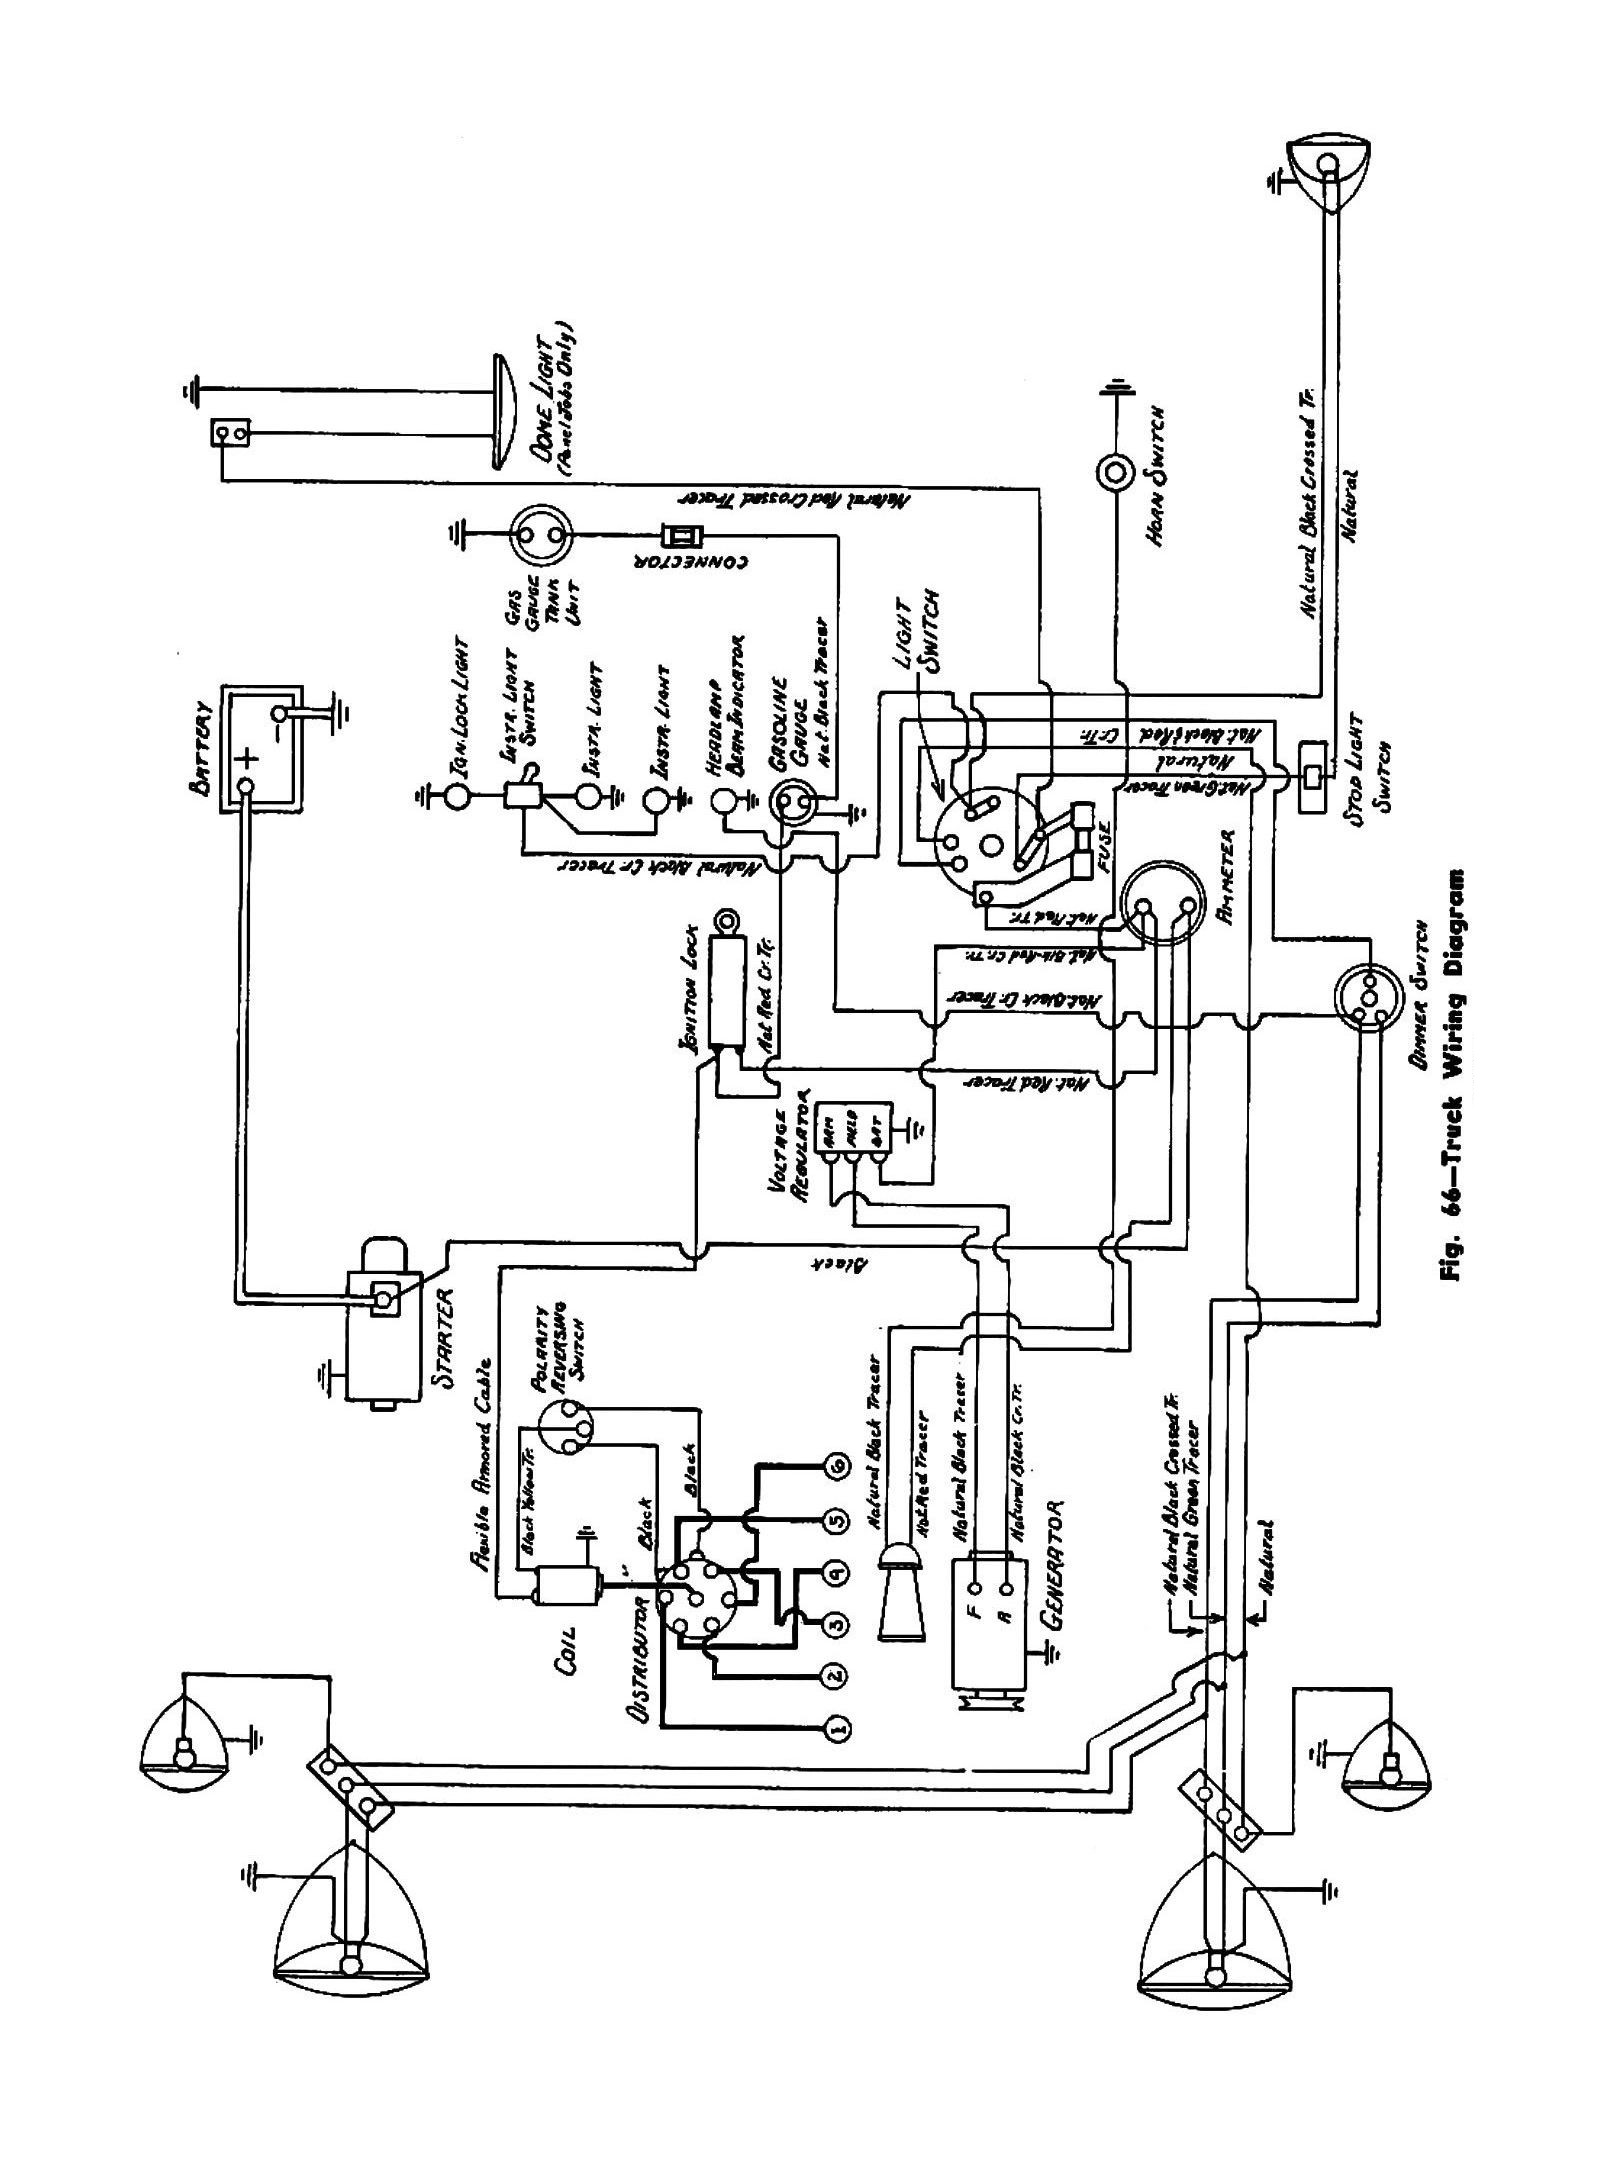 45truck apache wiring diagram schematic diagram \u2022 wiring diagram database  at suagrazia.org